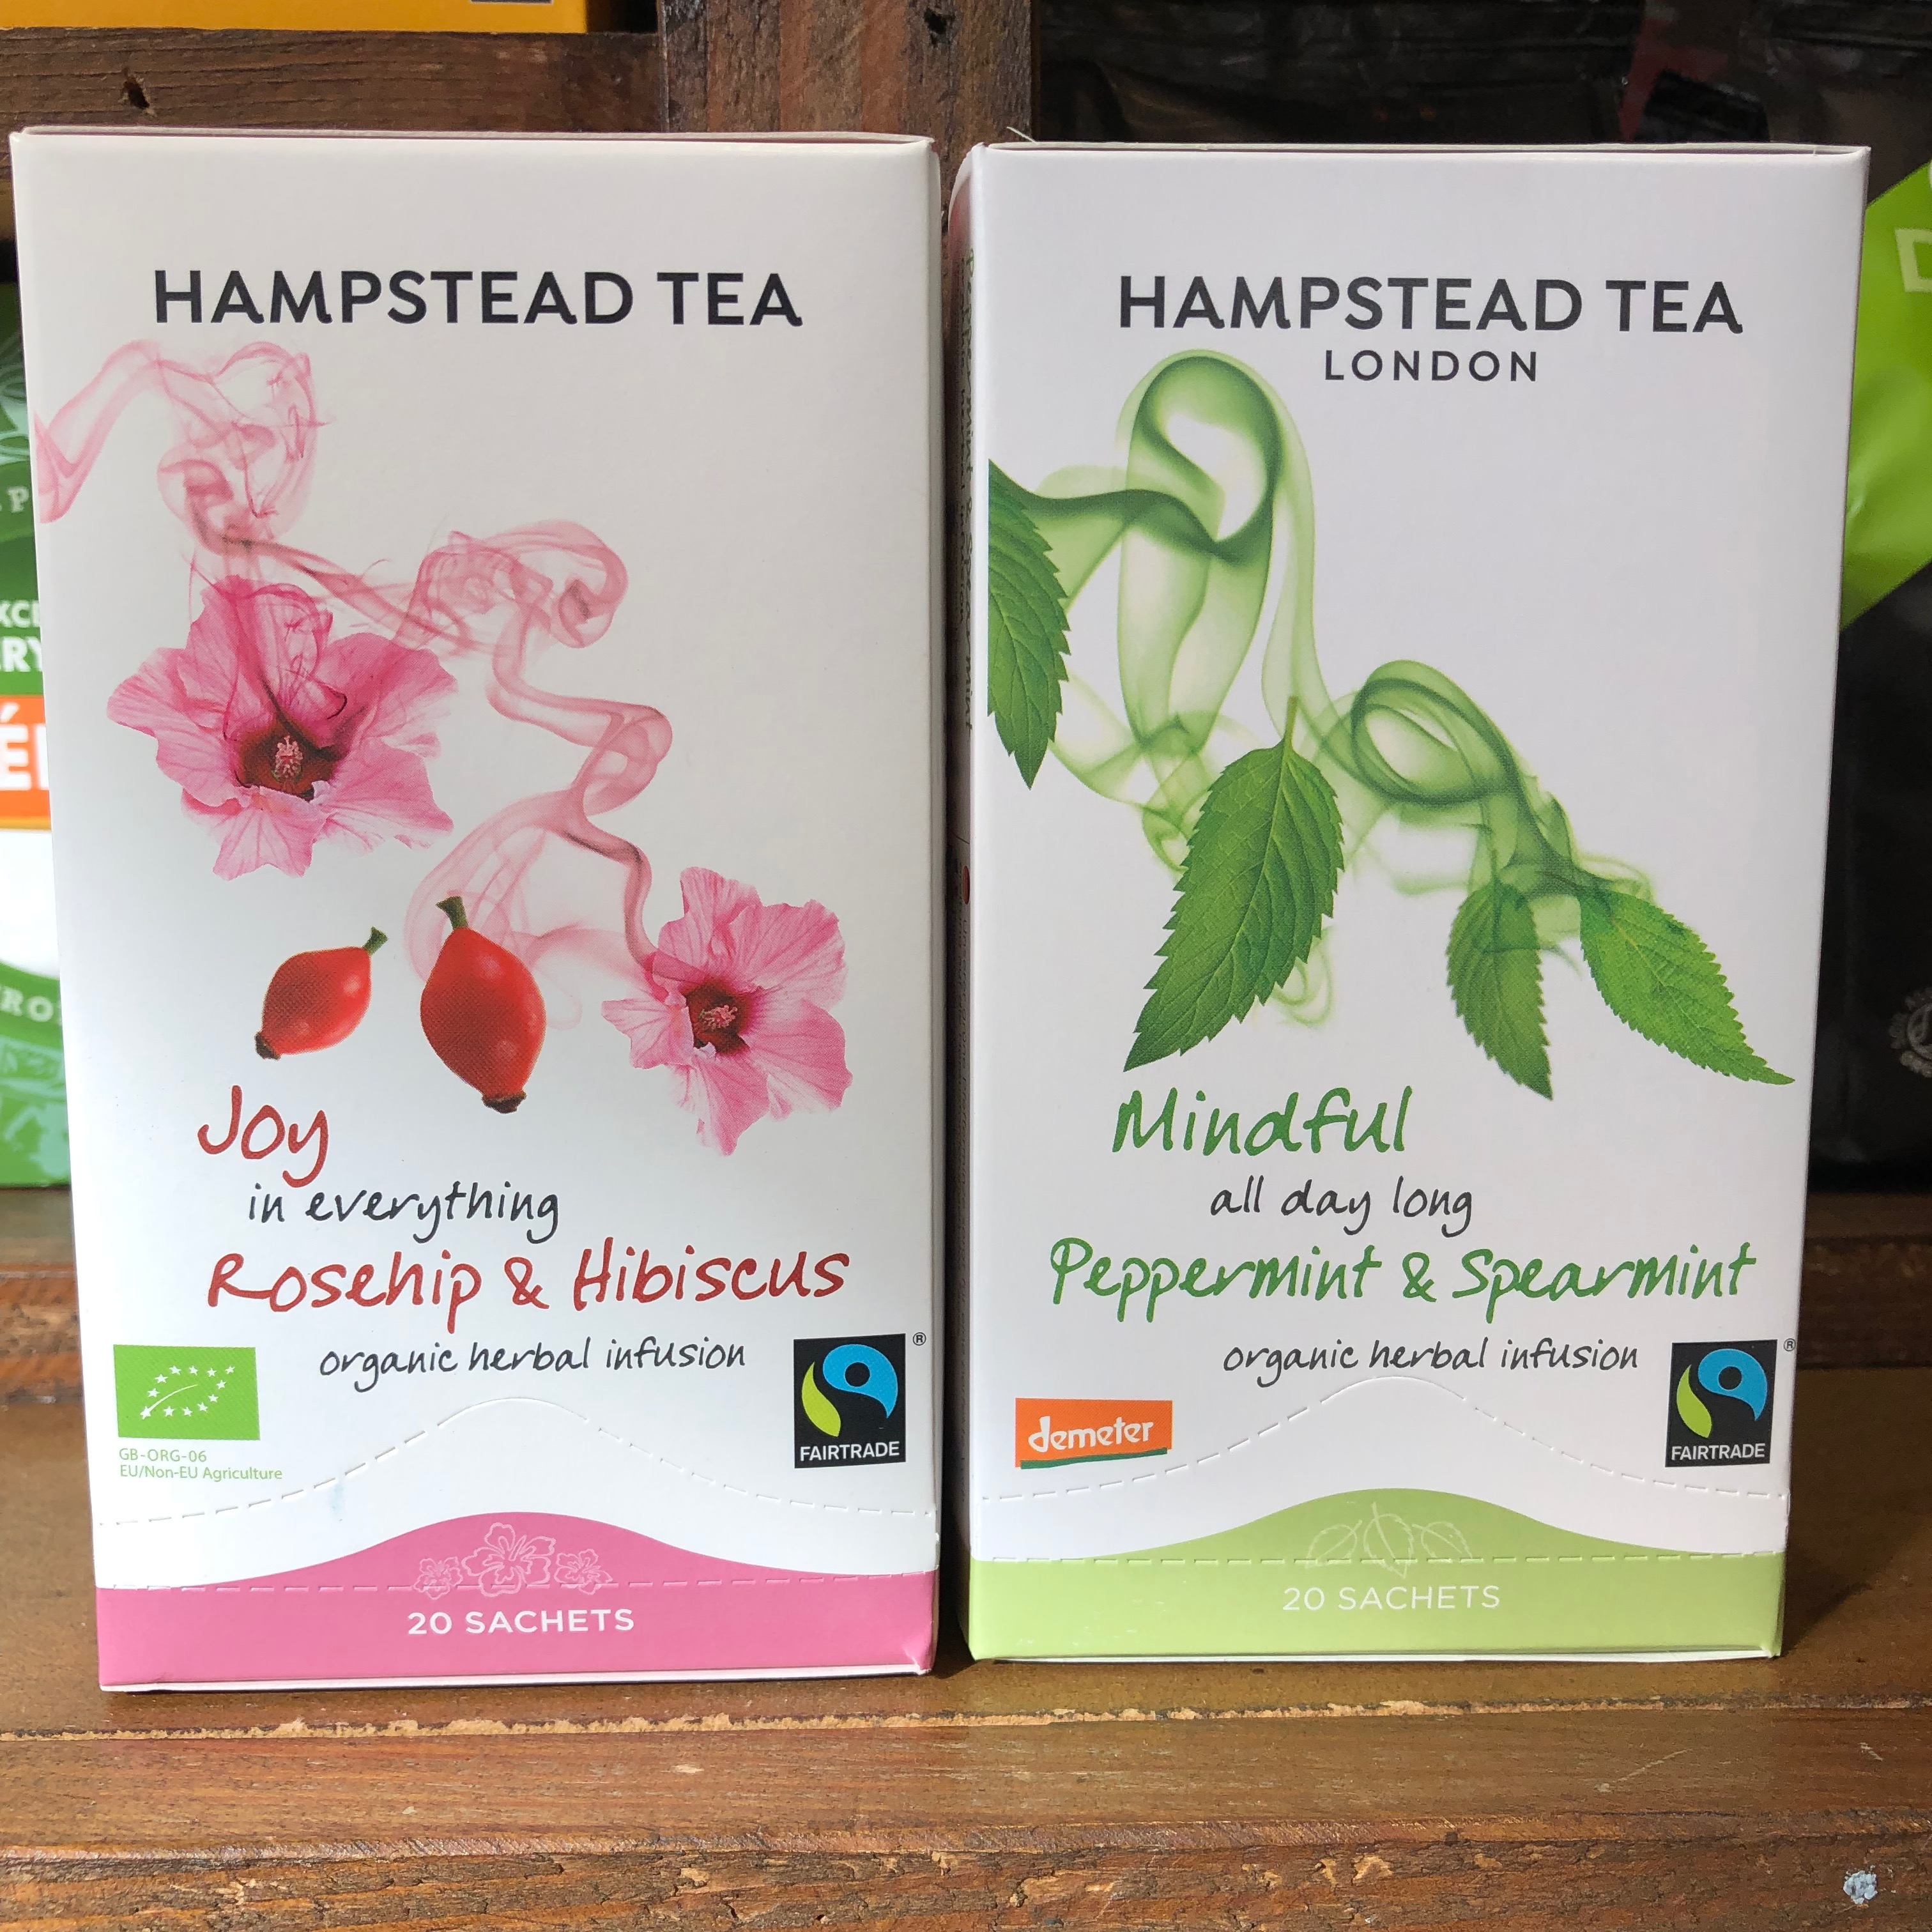 Hampstead boxes of rosehip & hibiscus and Peppermint & spearmint tea bags